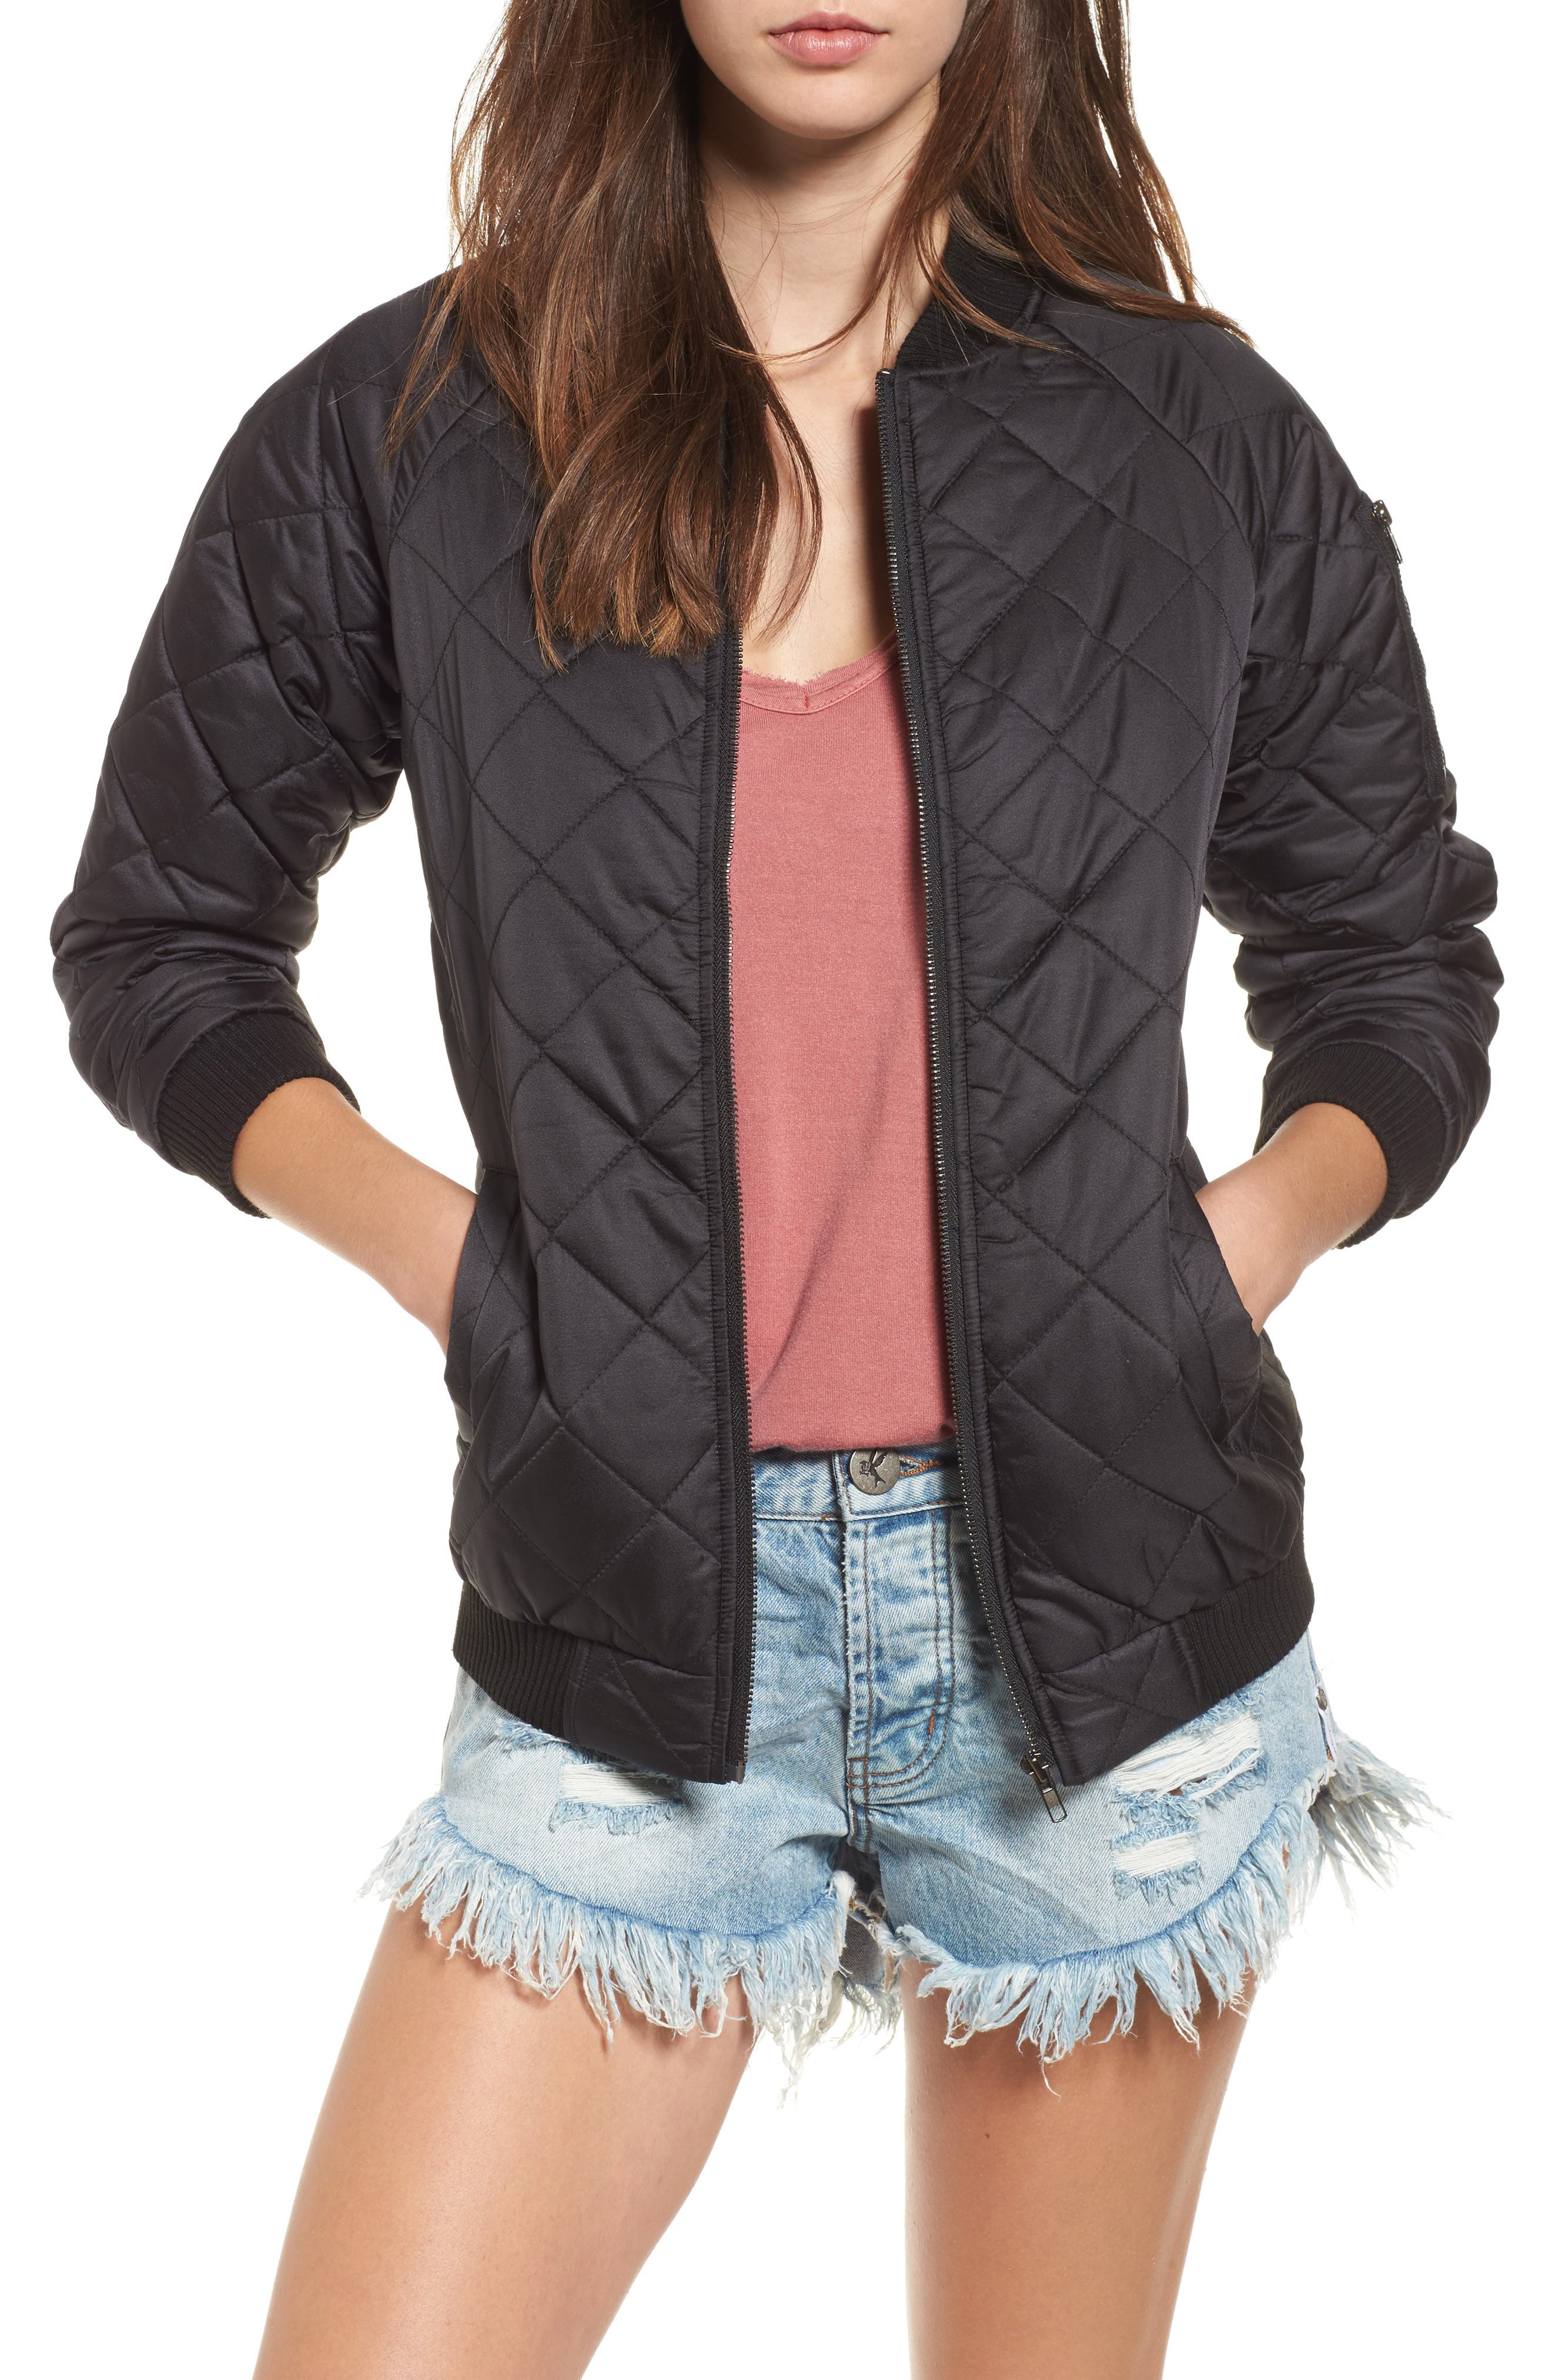 Lira Clothing La Rosa Quilted Bomber